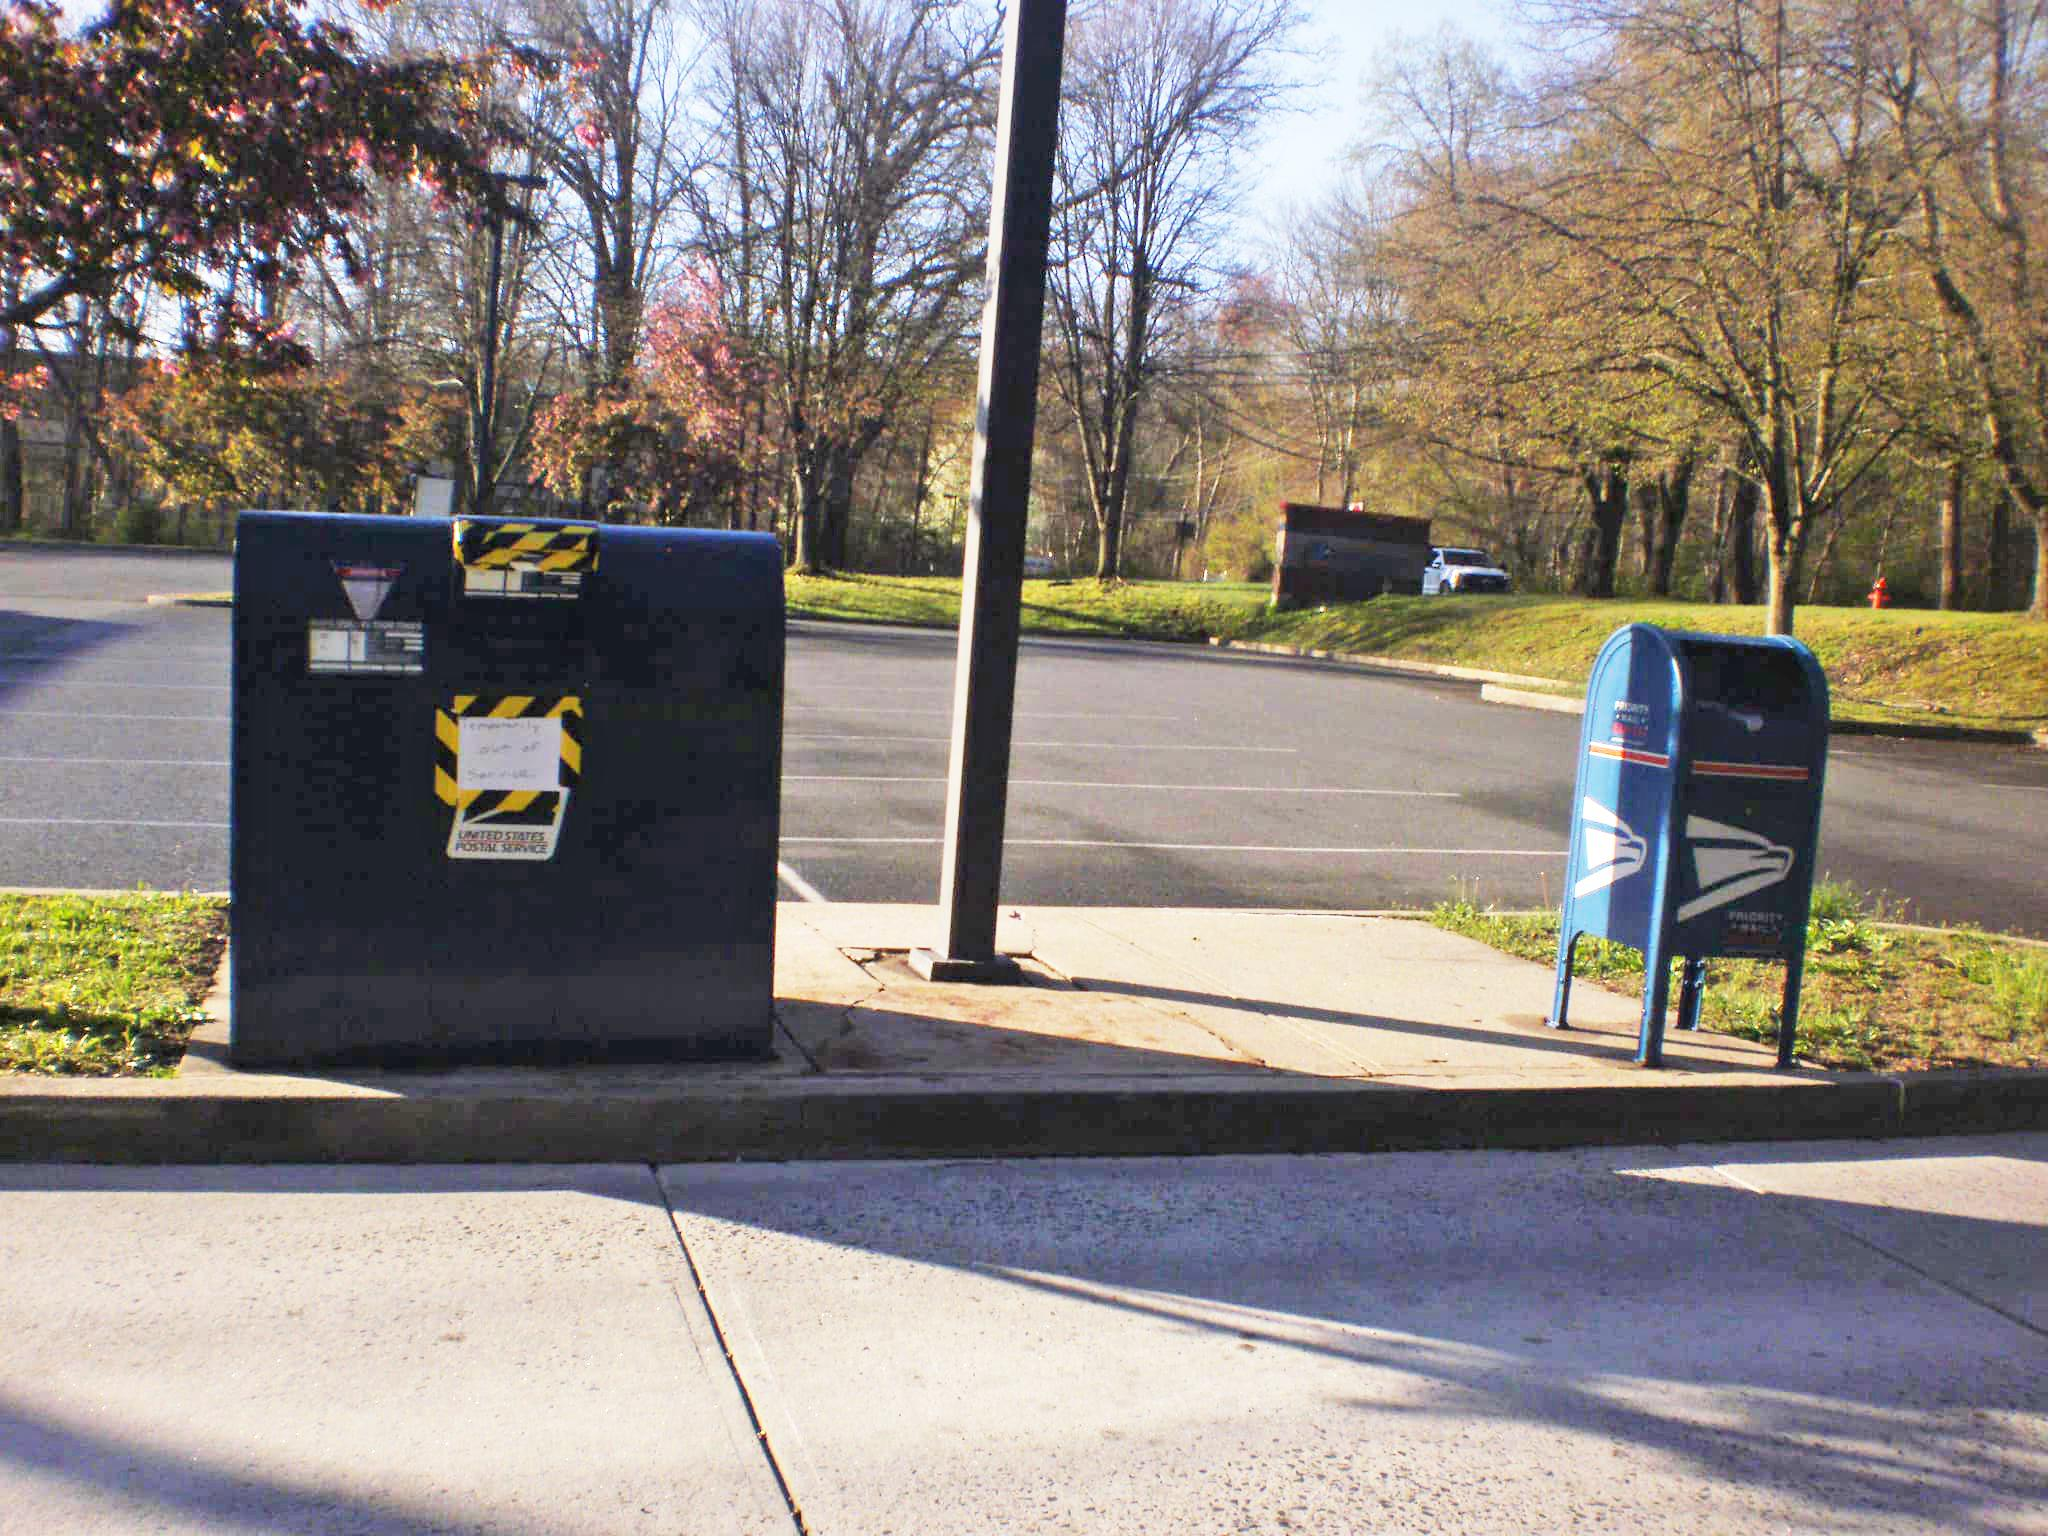 Mail Stolen From Vandalized Newtown Drop Box Sfgate